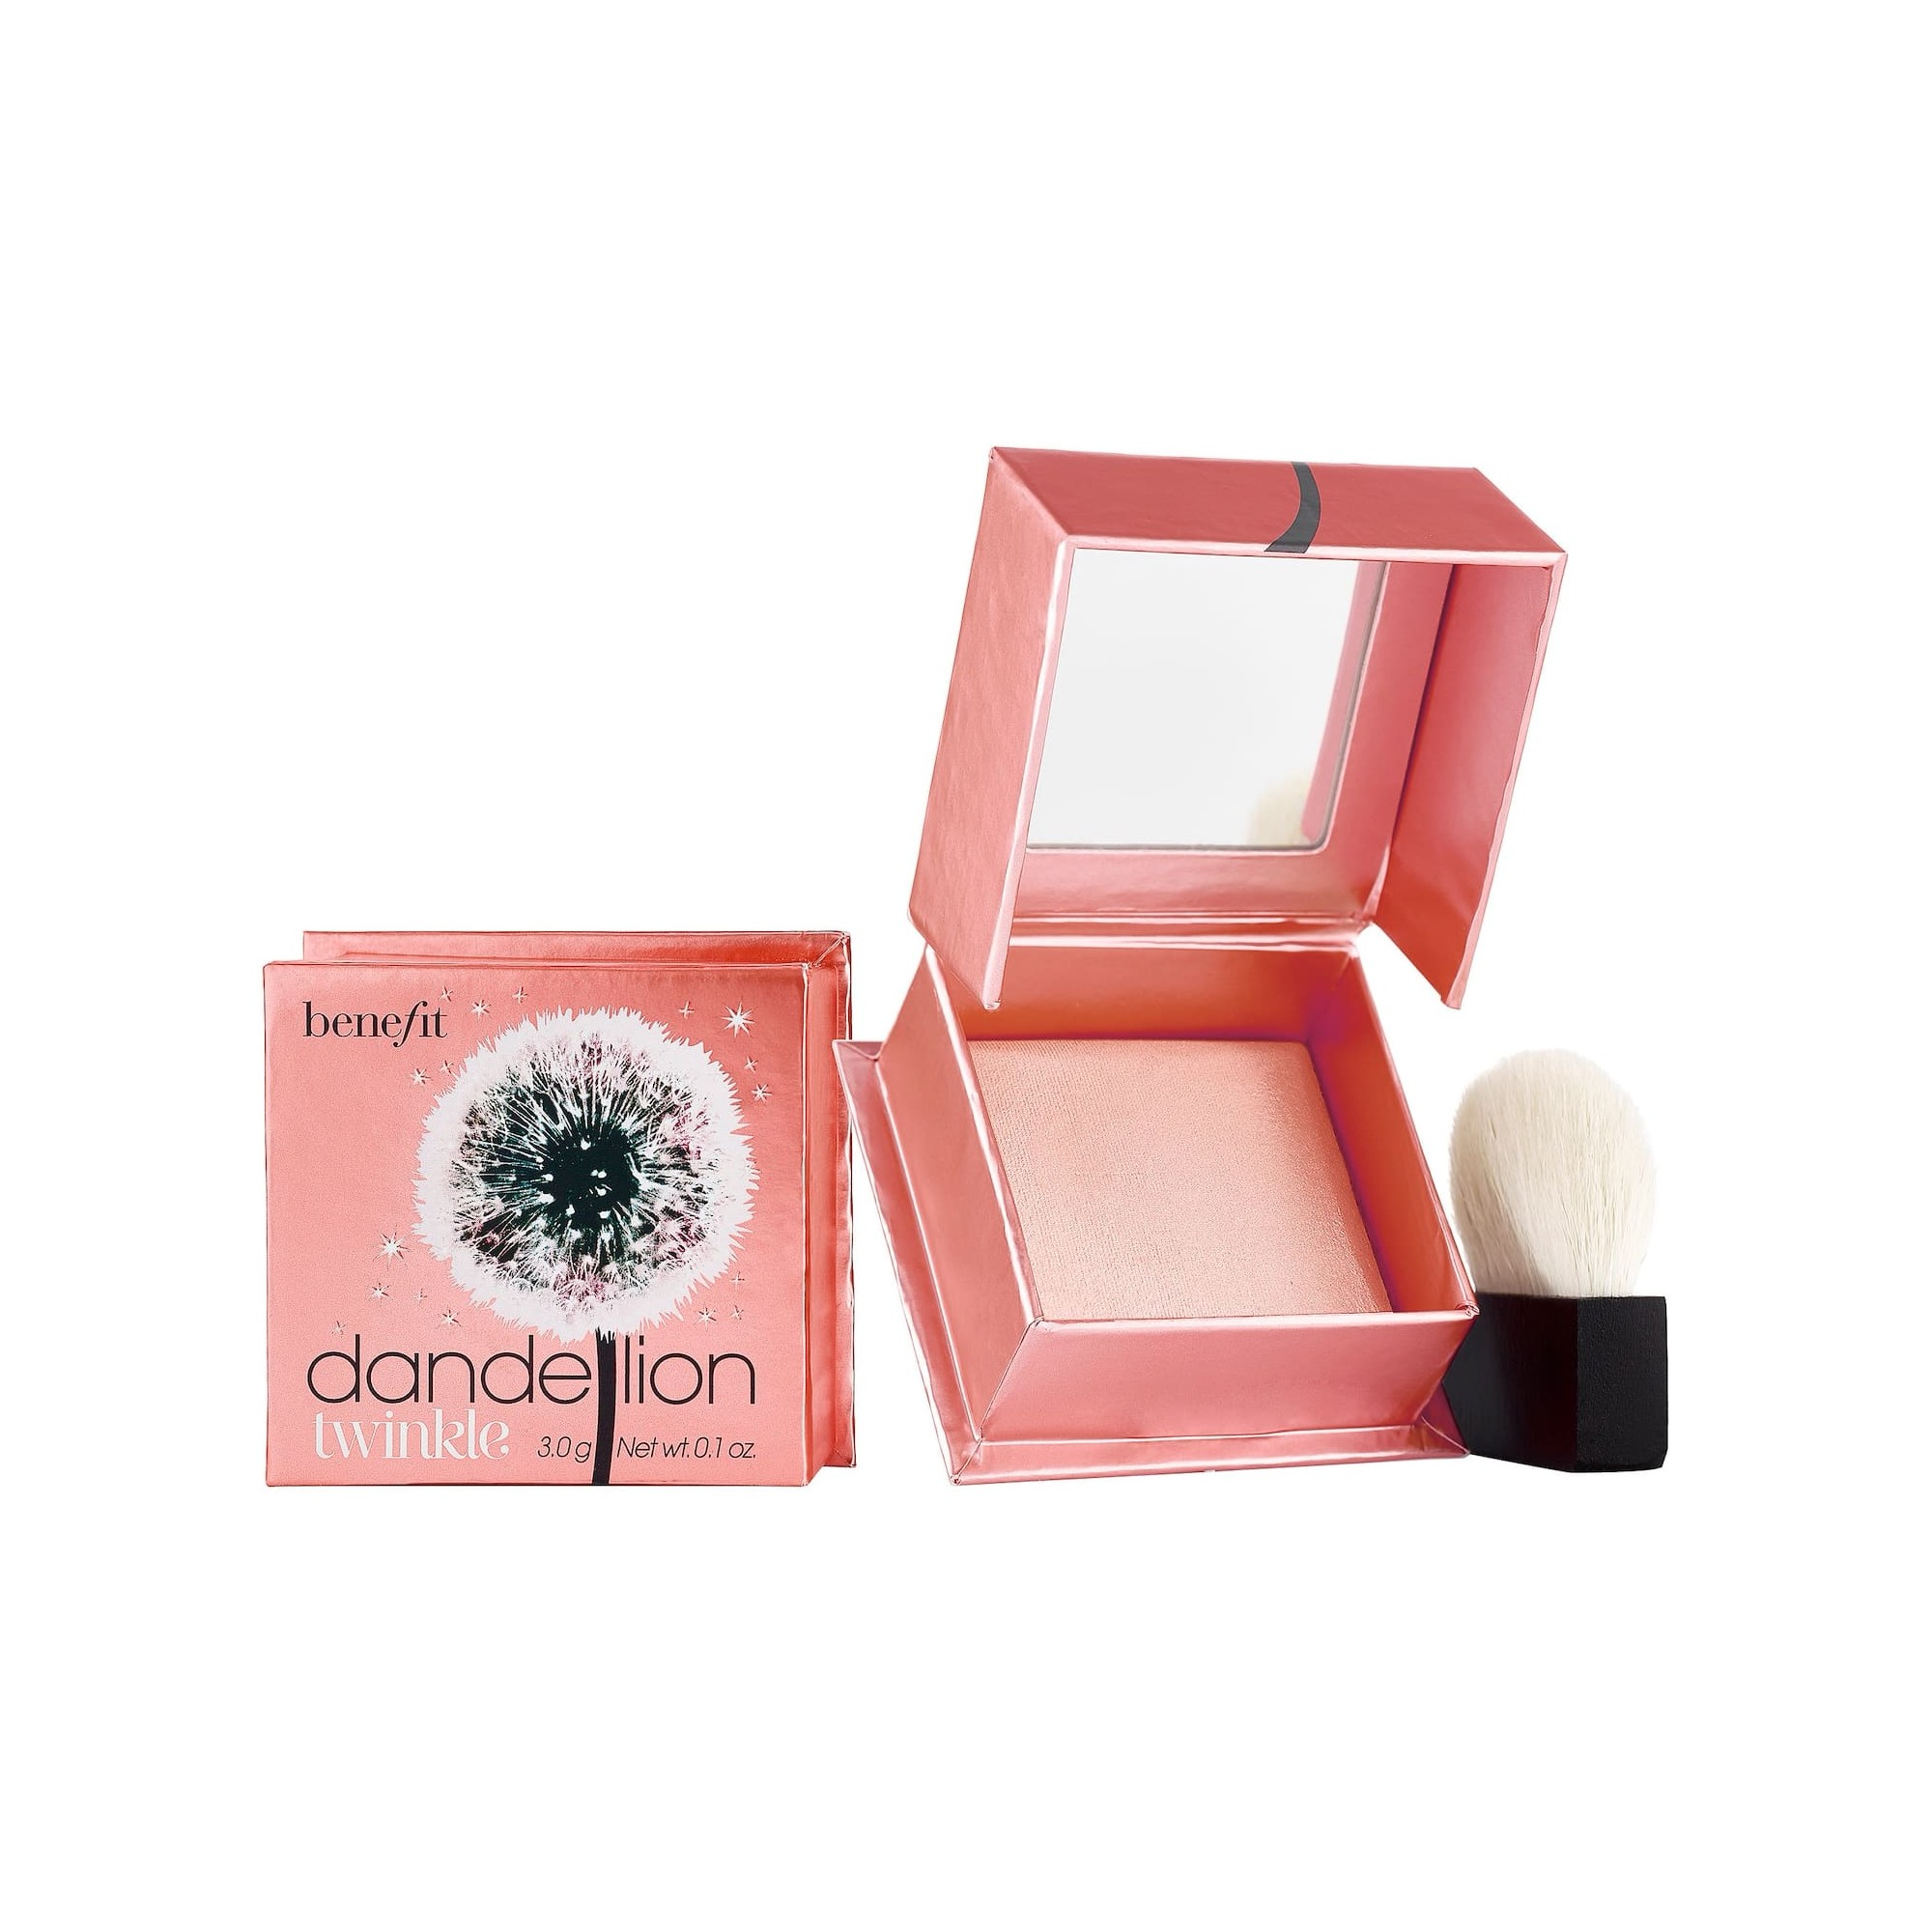 Benefit Cosmetics Dandelion Twinkle Highlighter